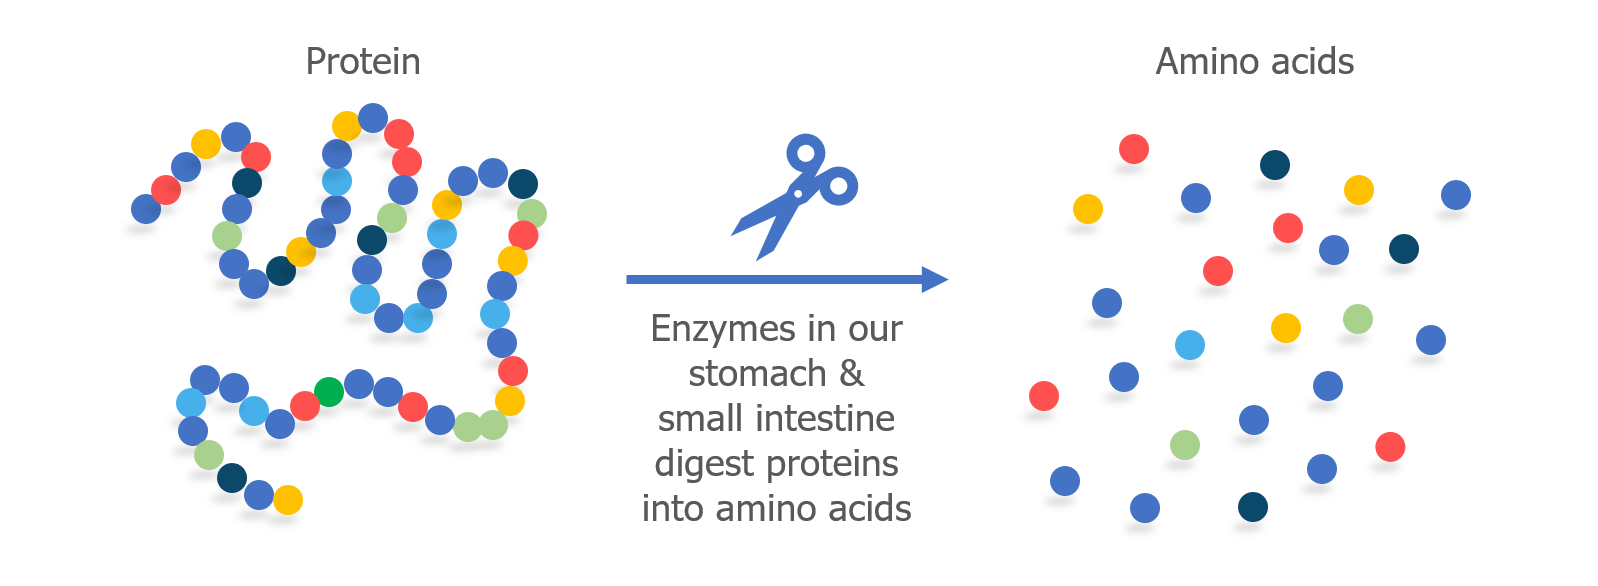 Protein Illustrations and Visualization | Ask A Biologist |Proteins Amino Acids